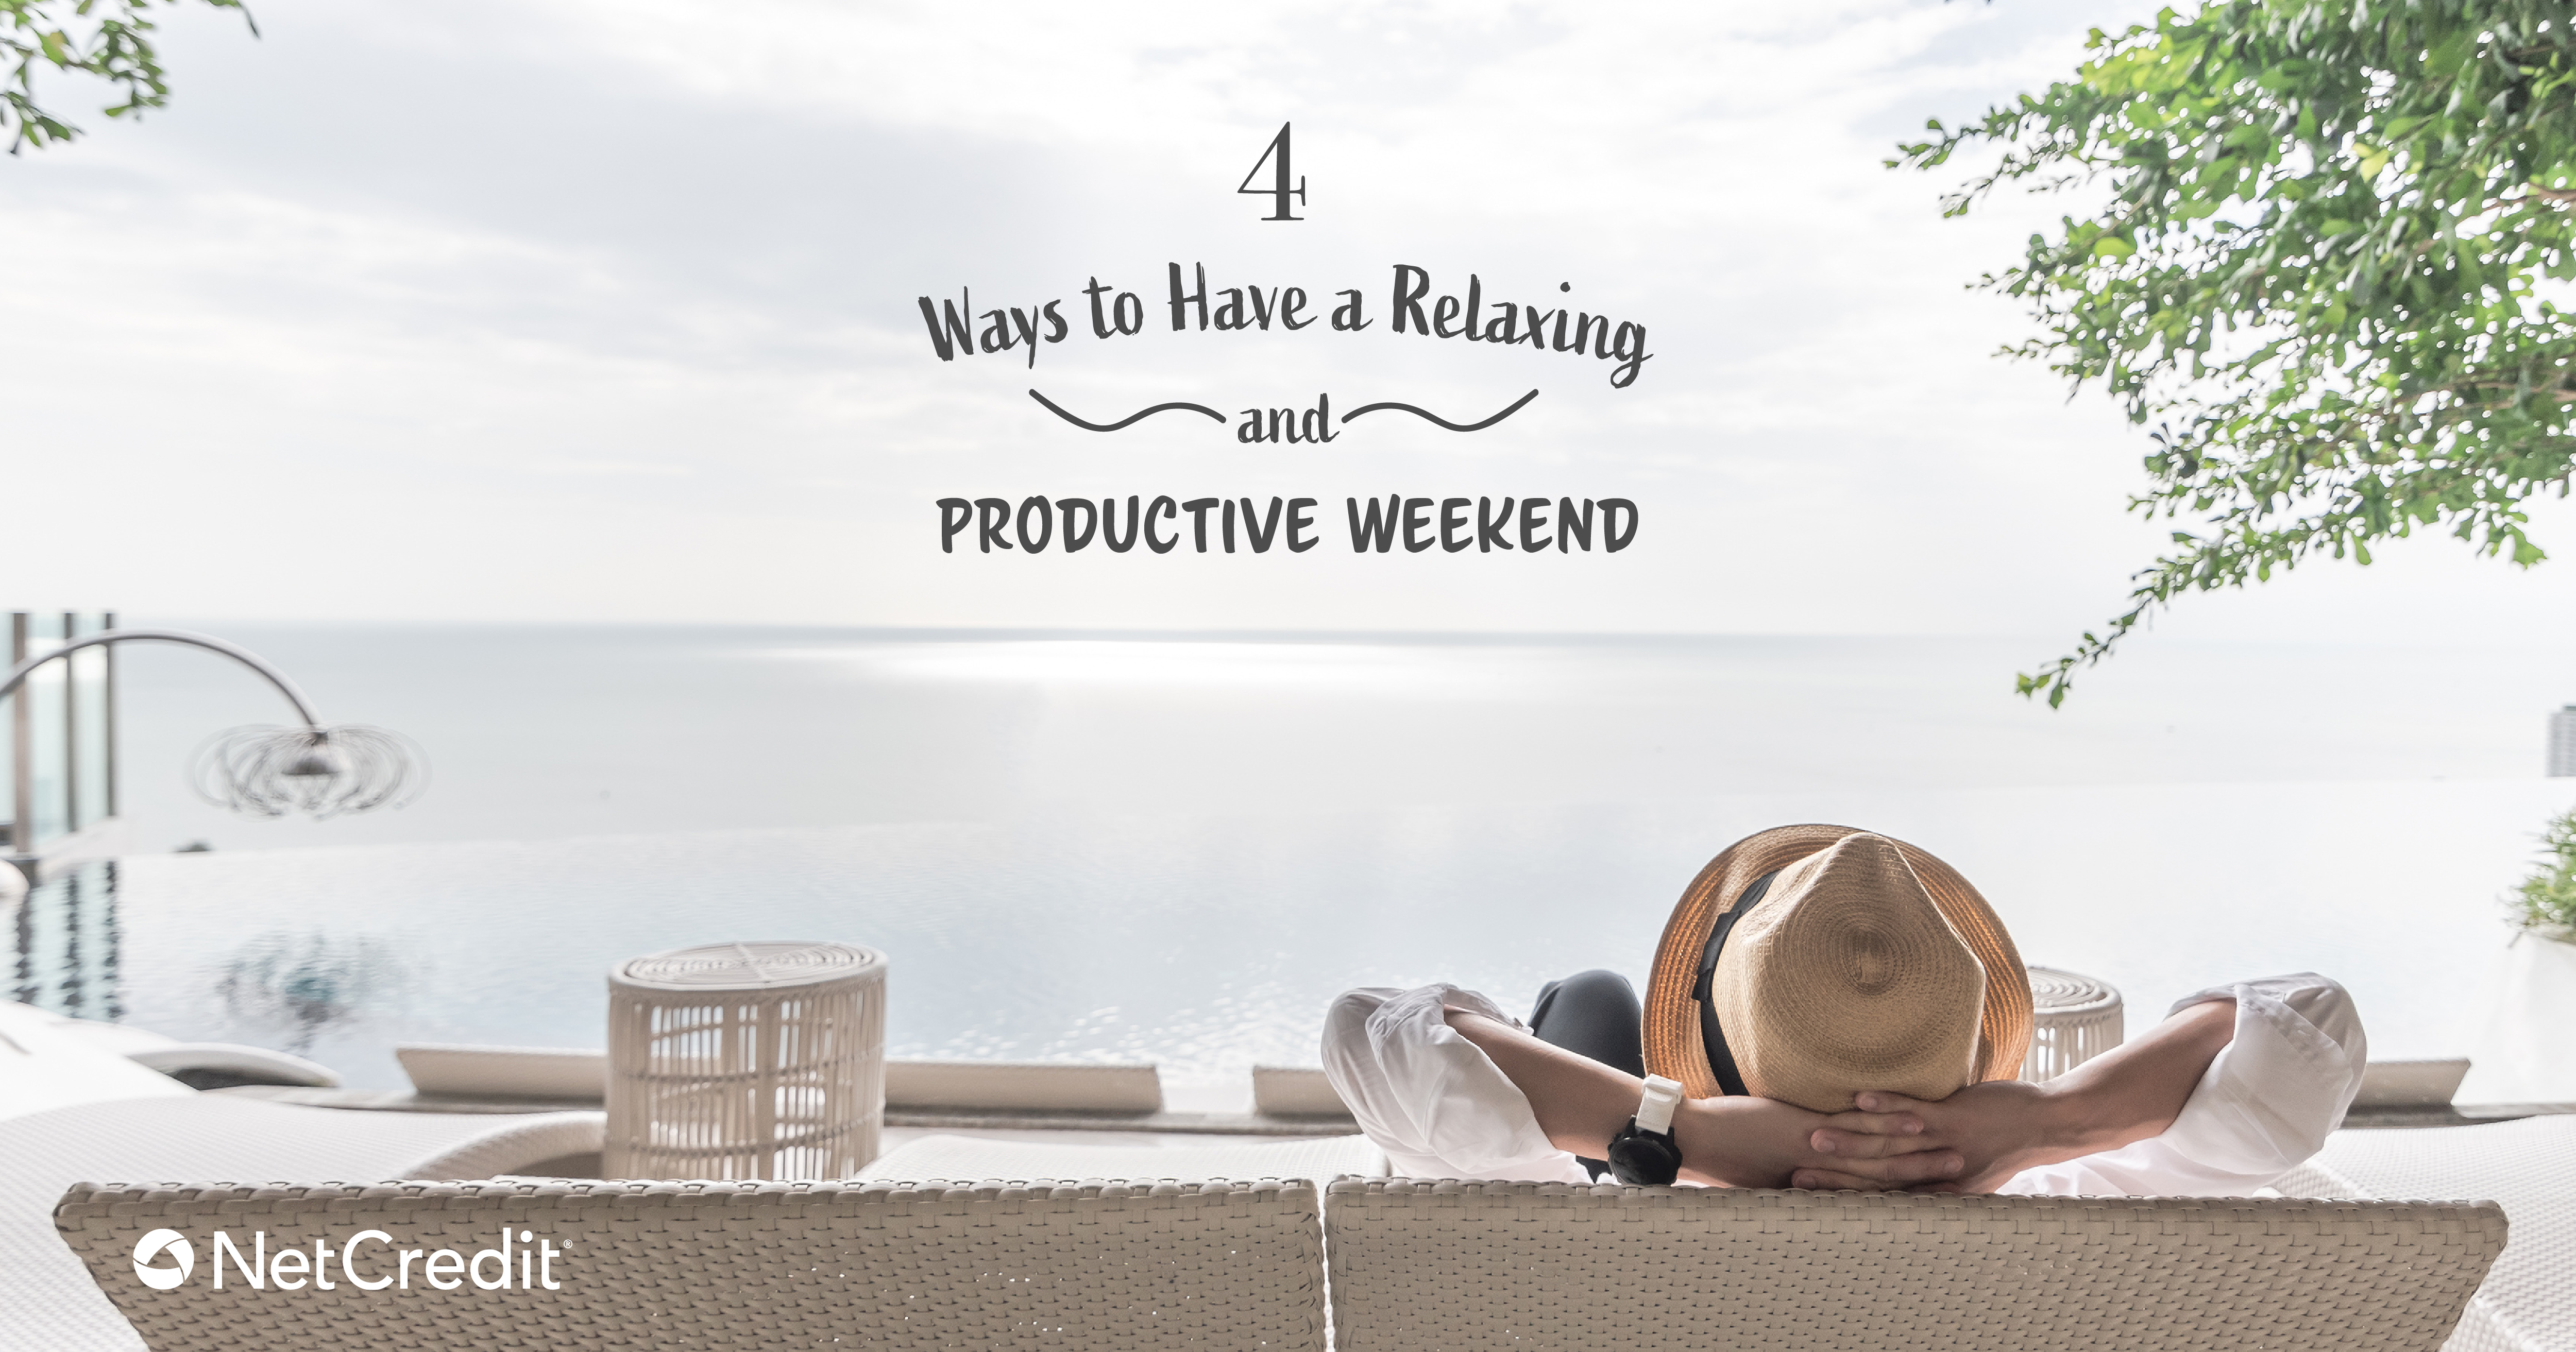 How to Make the Most of Your Weekend